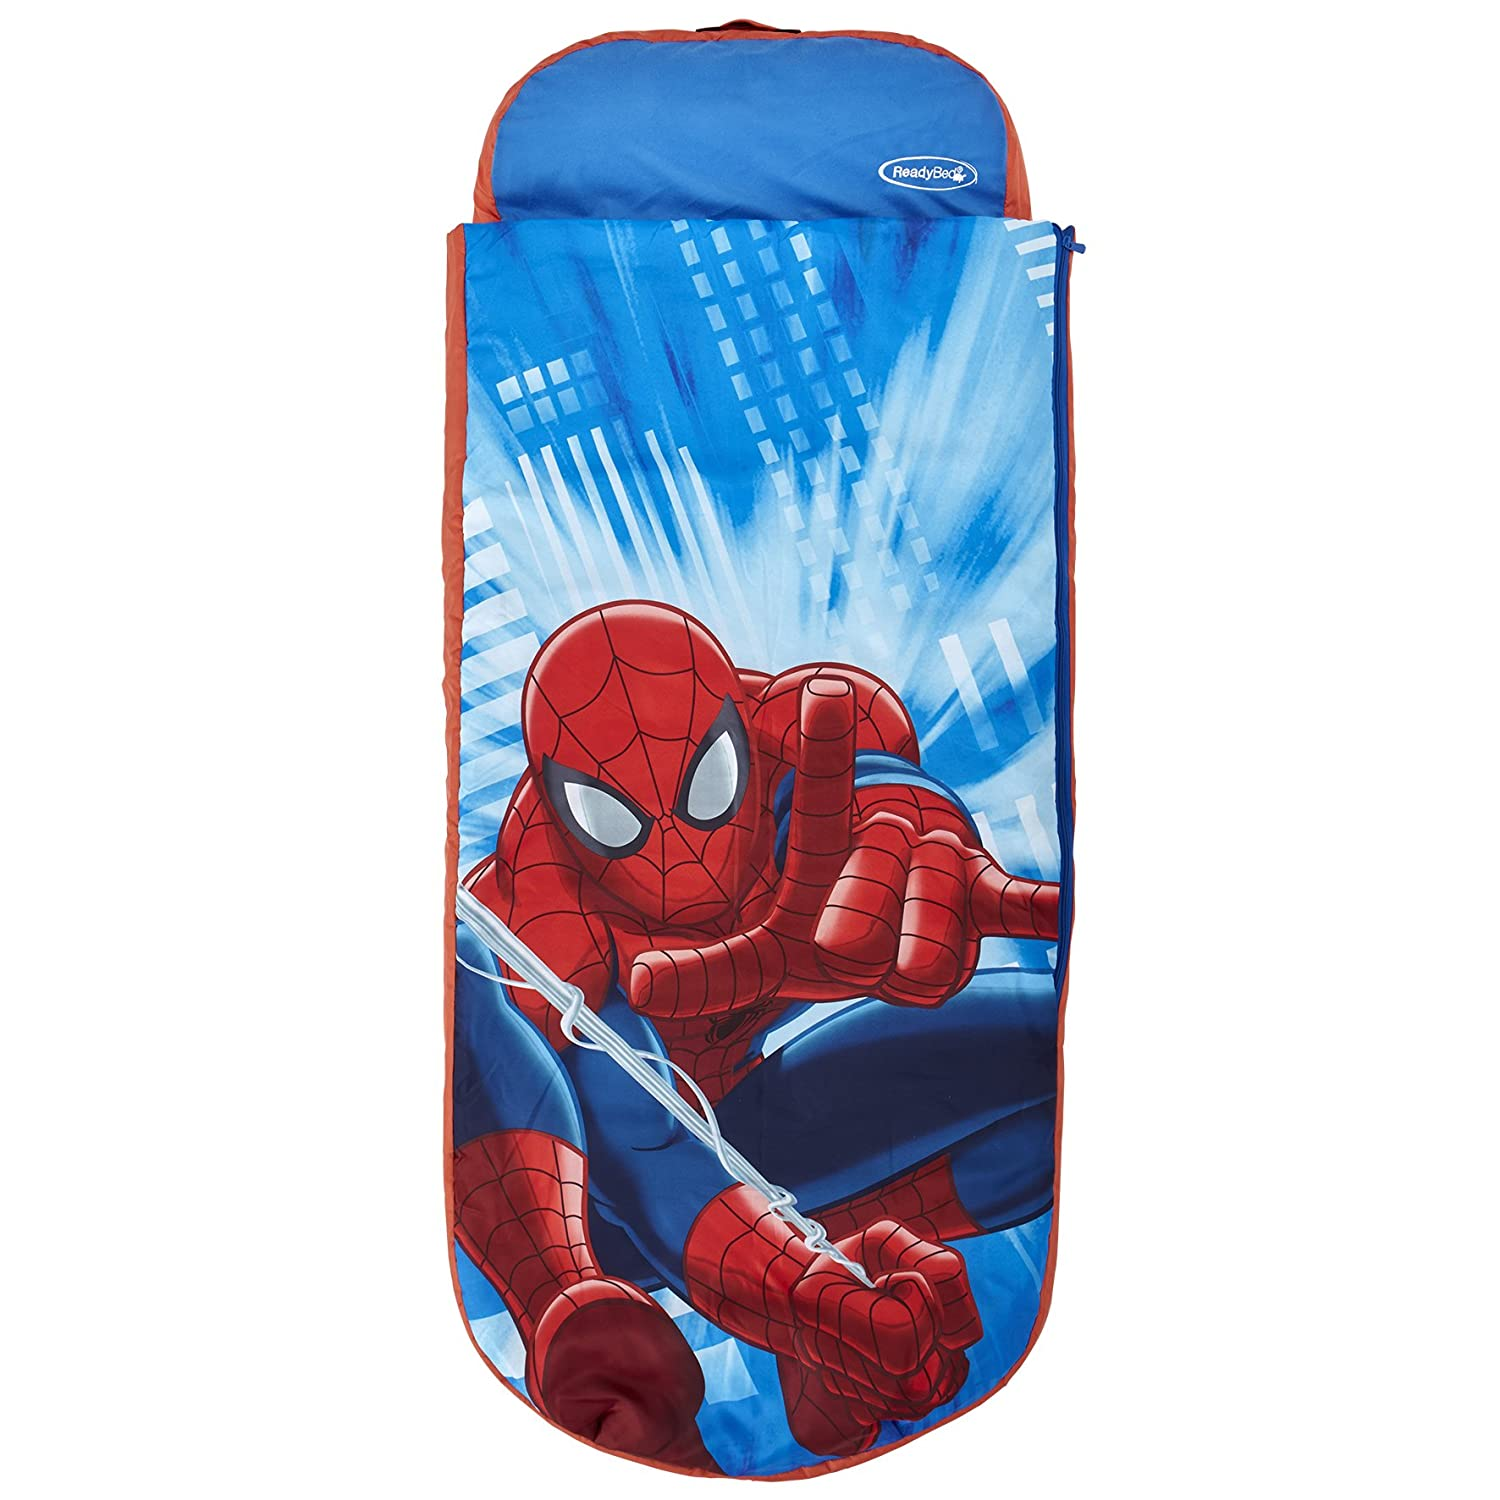 Marvel Comics Avengers Junior ReadyBed - Kids Airbed and Sleeping Bag in one Worlds Apart 406ANV